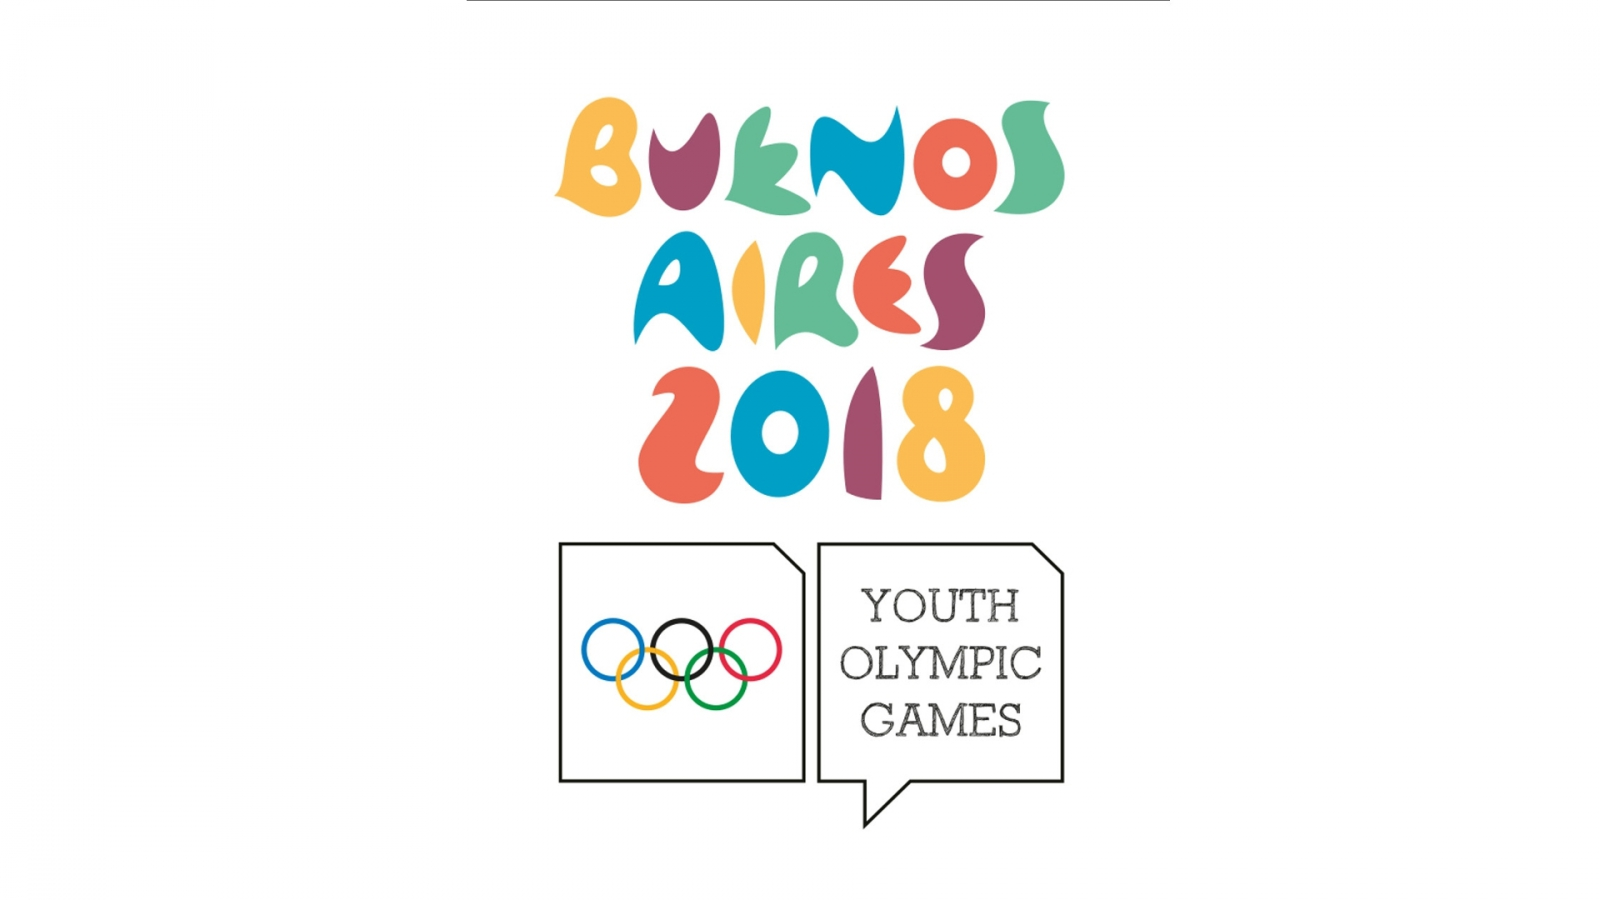 Results Youth Olympic Games 2018 Qualification Tournament